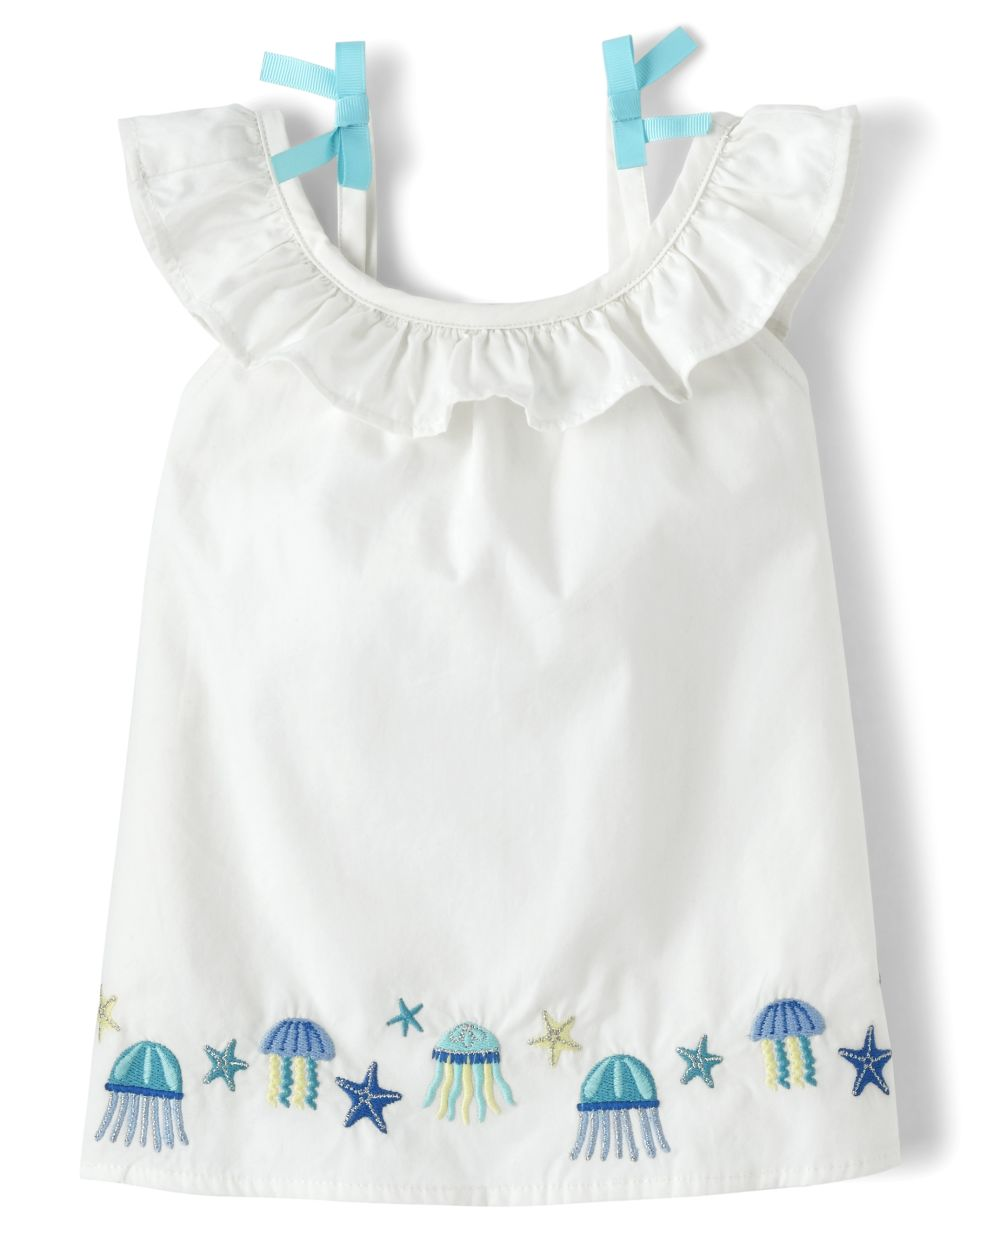 Girls Embroidered Jellyfish Ruffle Top - Under The Sea